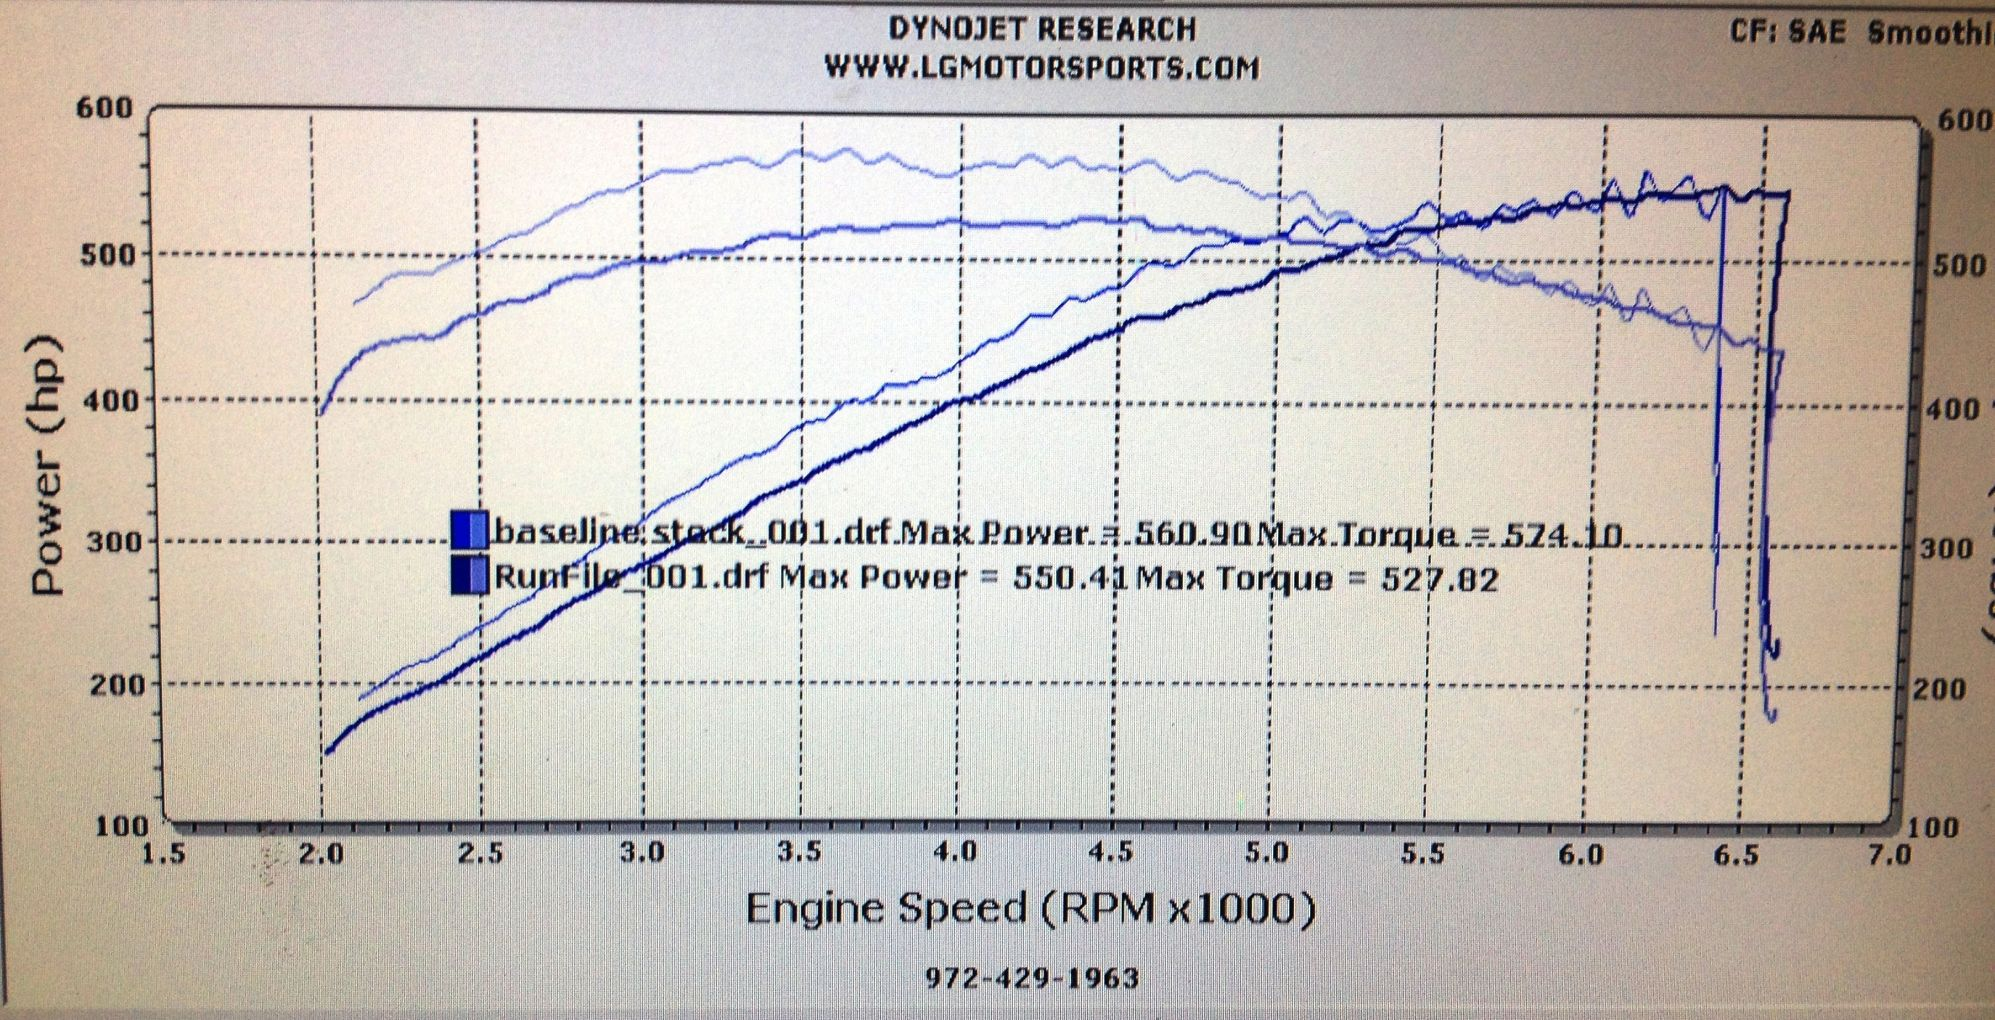 2015 Corvette Z06 Vs C6 Corvette Zr1 Dyno  parison Shows Why The Z06 Feels Faster 90639 together with Amsoil Snowmobiles together with News also What Is My Model Number I9 further Baldor Large Frame Ac Induction Motors. on motor hp chart